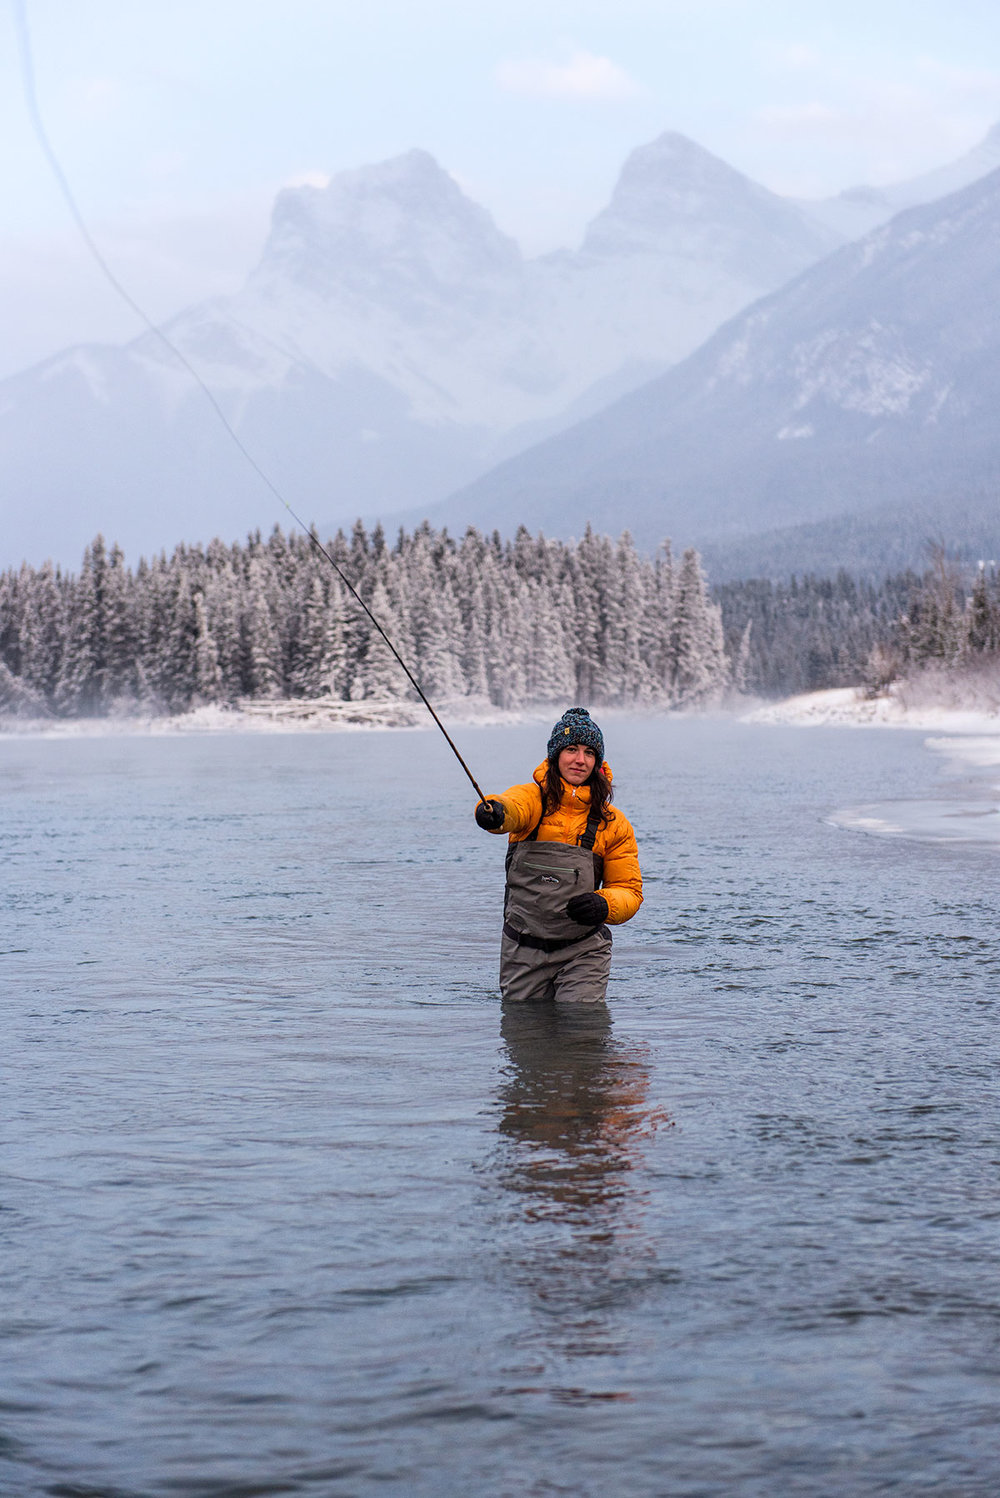 austin-trigg-patagonia-banff-alberta-winter-canada-lifestyle-adventure-mountains-bow-river-fly-fishing.jpg